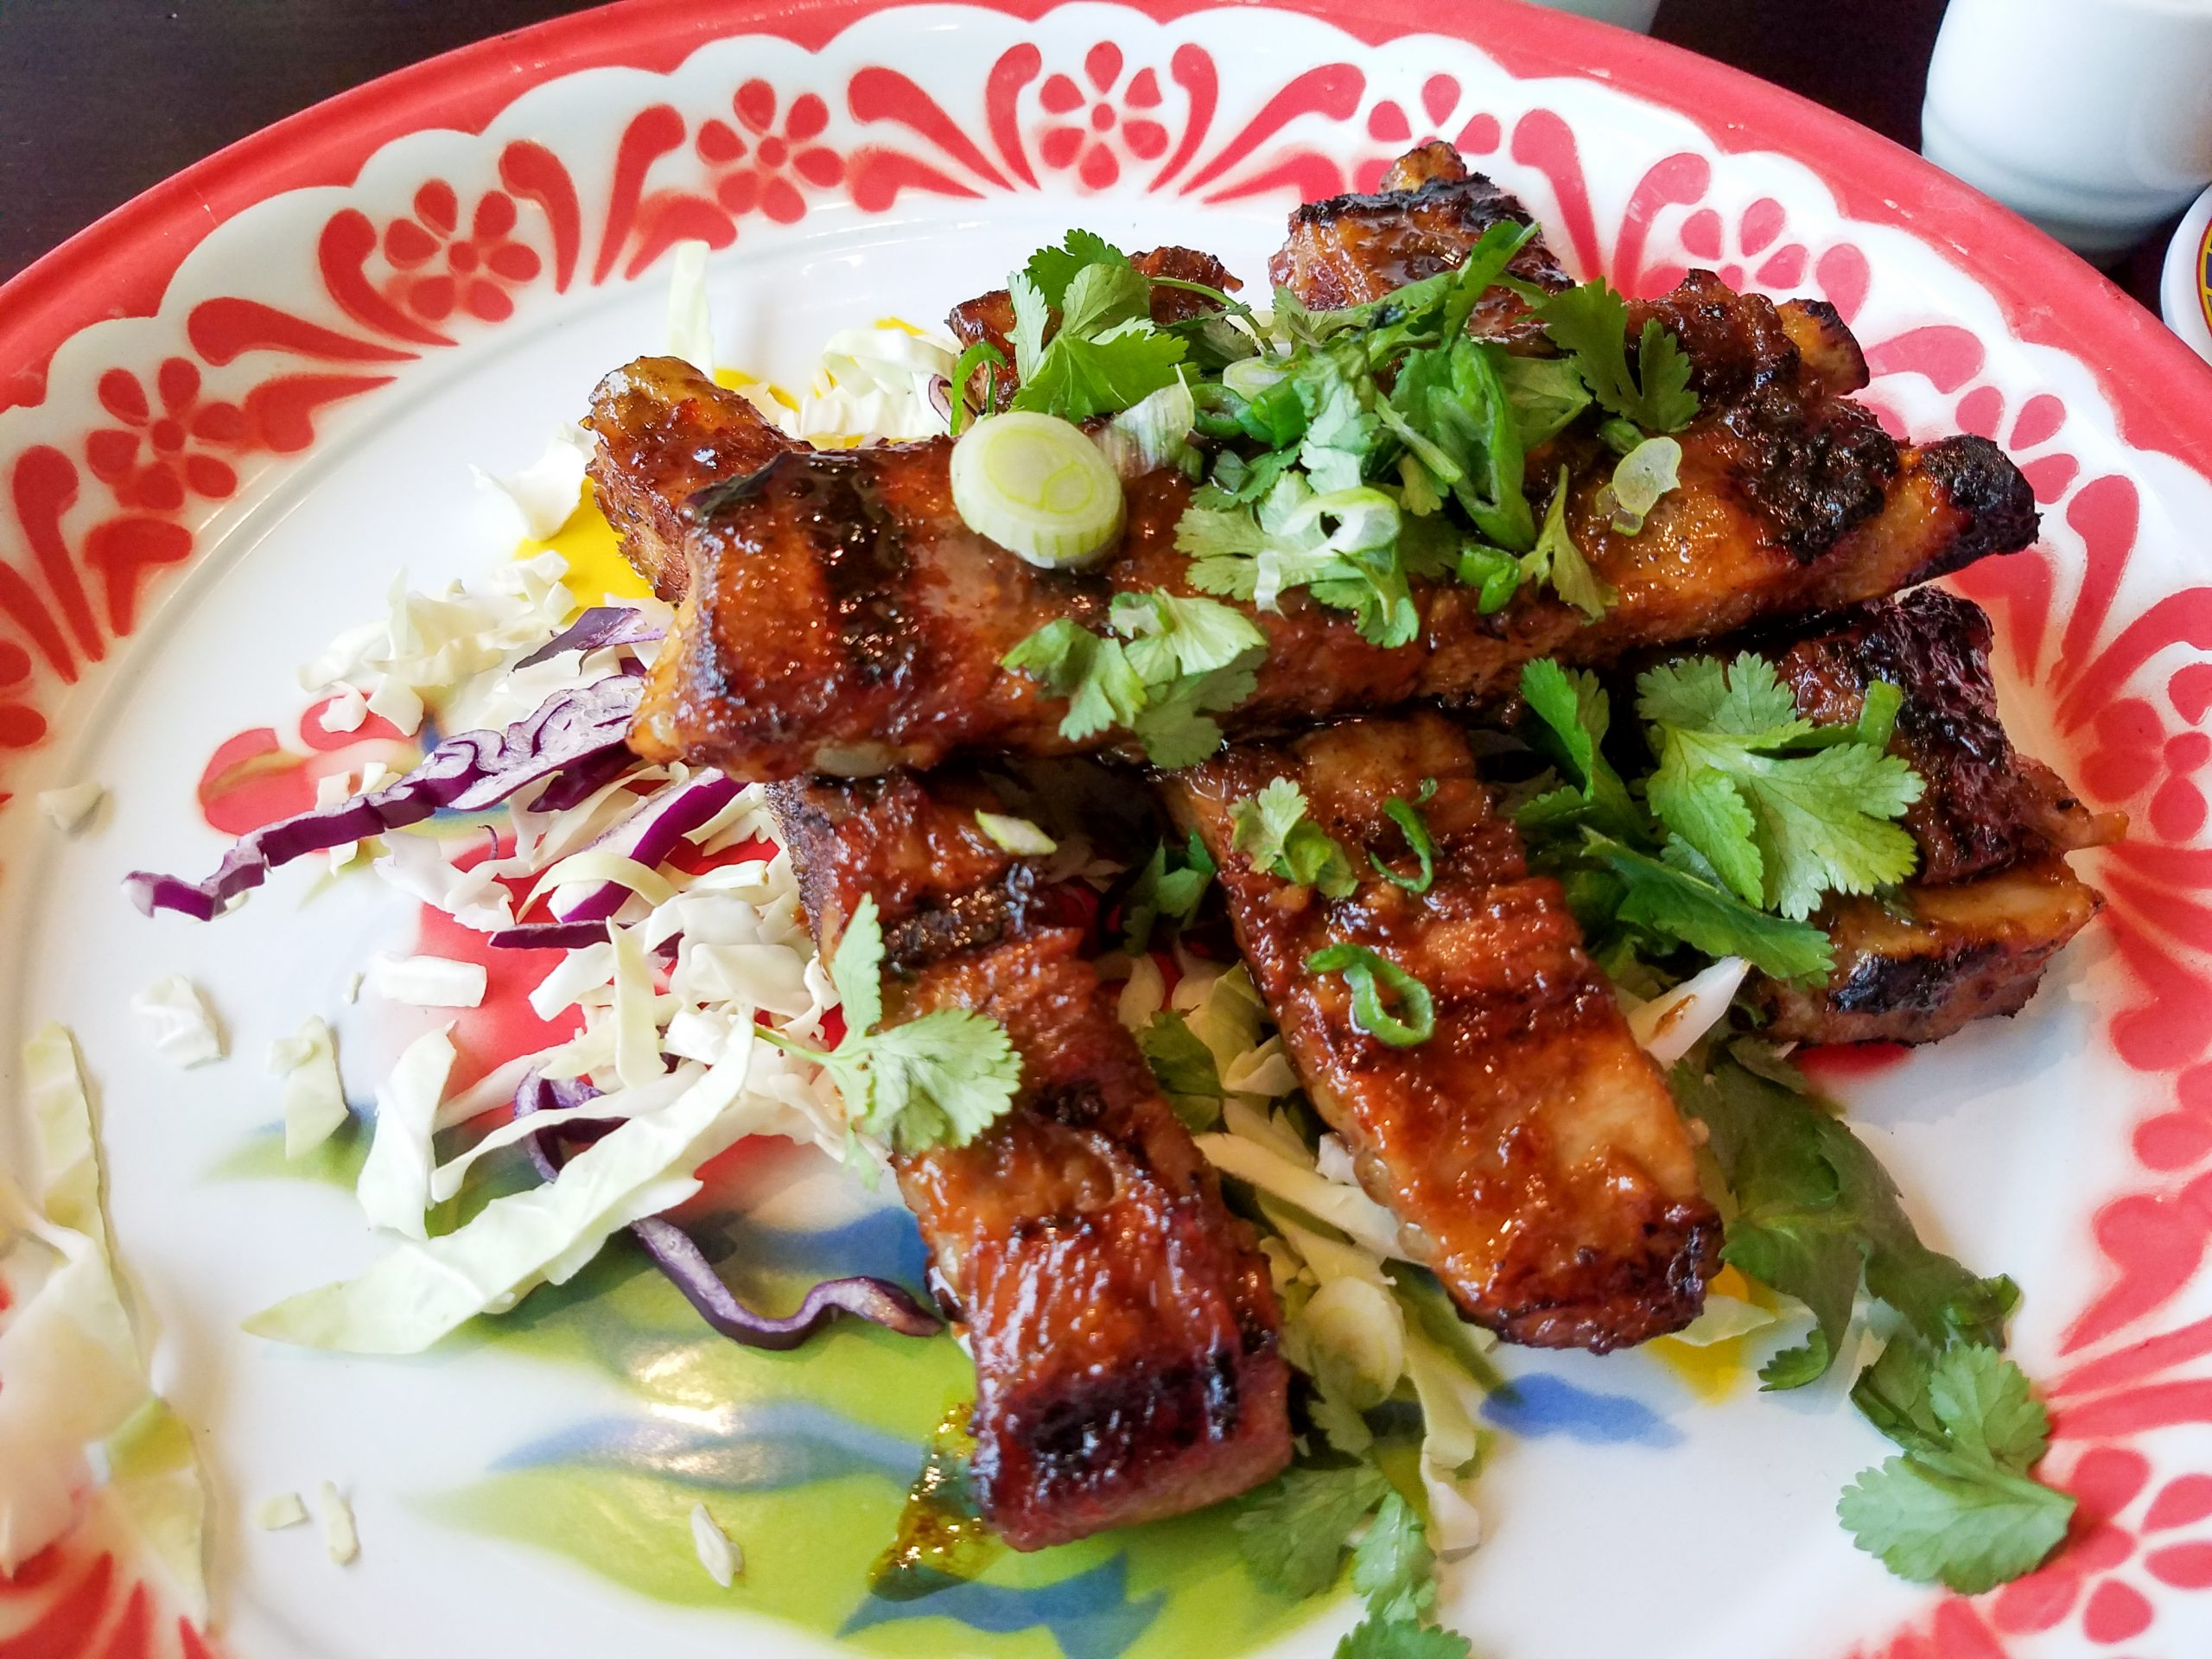 Kiin's Tamarind spare ribs are coated with a splendid tasting bbq sauce.